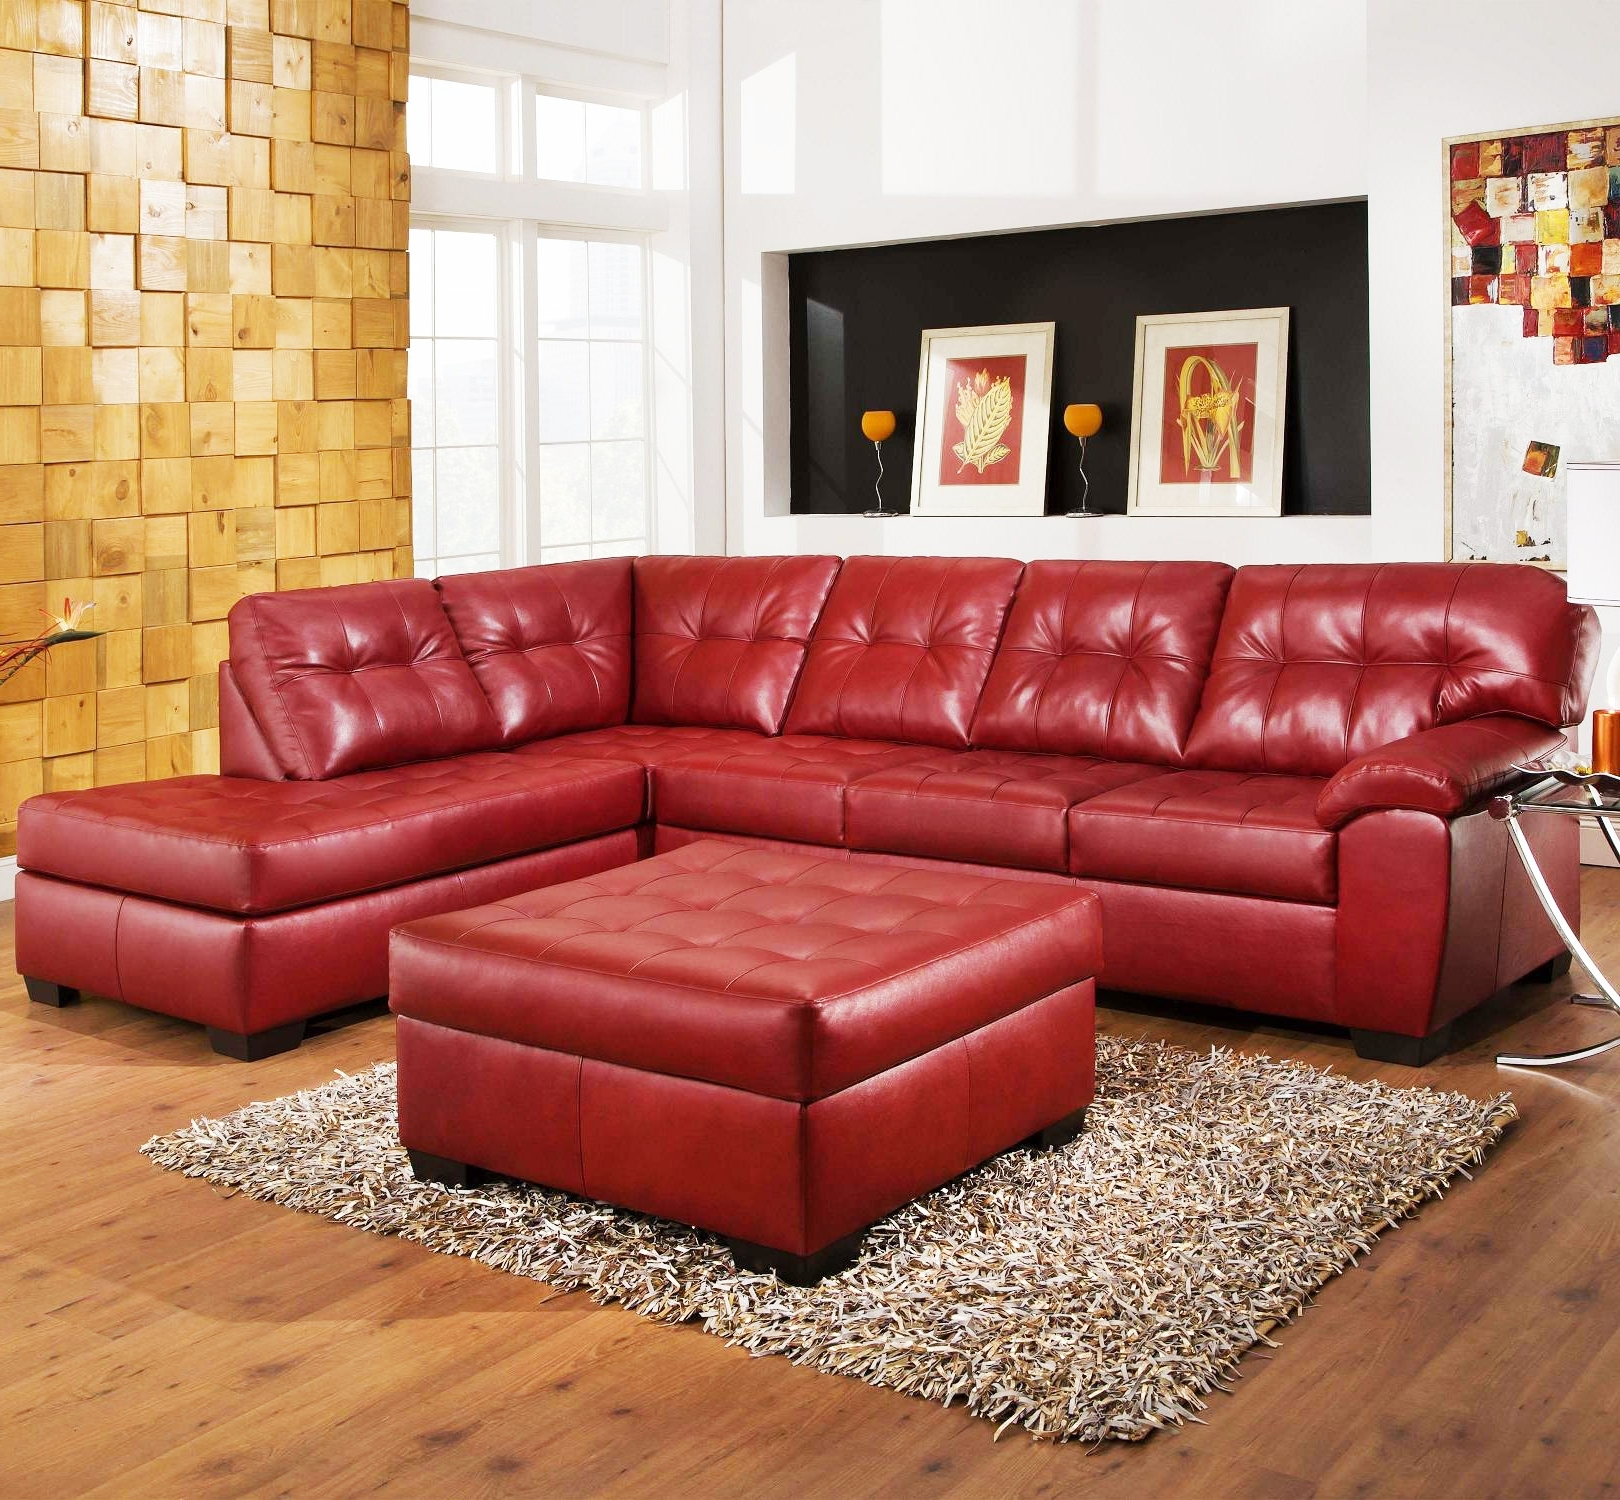 Red Faux Leather Sectionals For Best And Newest Living Room: Astonishing Rooms To Go Sectional Leather Rooms To Go (View 4 of 15)